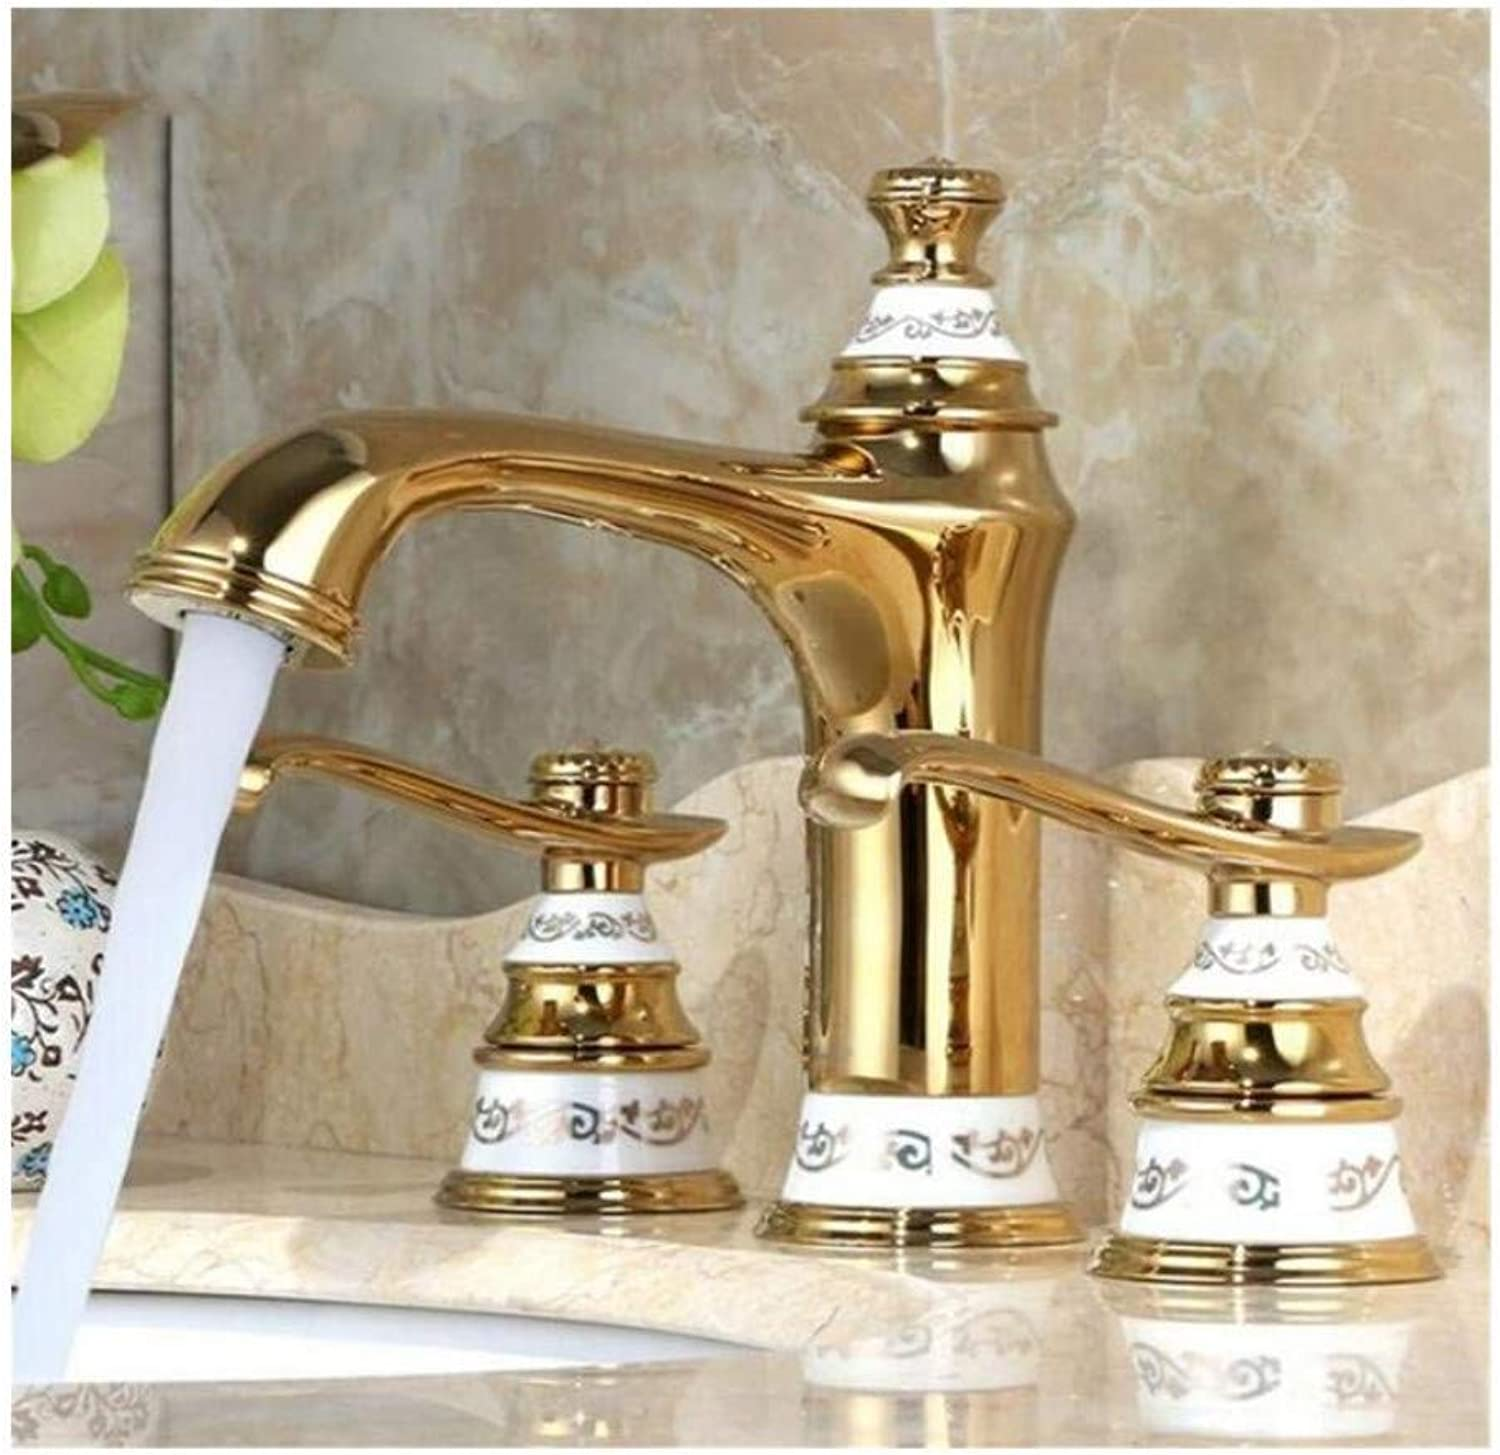 Faucet Lead-Free Square Innovationfaucet Good Quality Basin Mixer Tap 2 Handles 3 Holes Hot and Cold Faucet